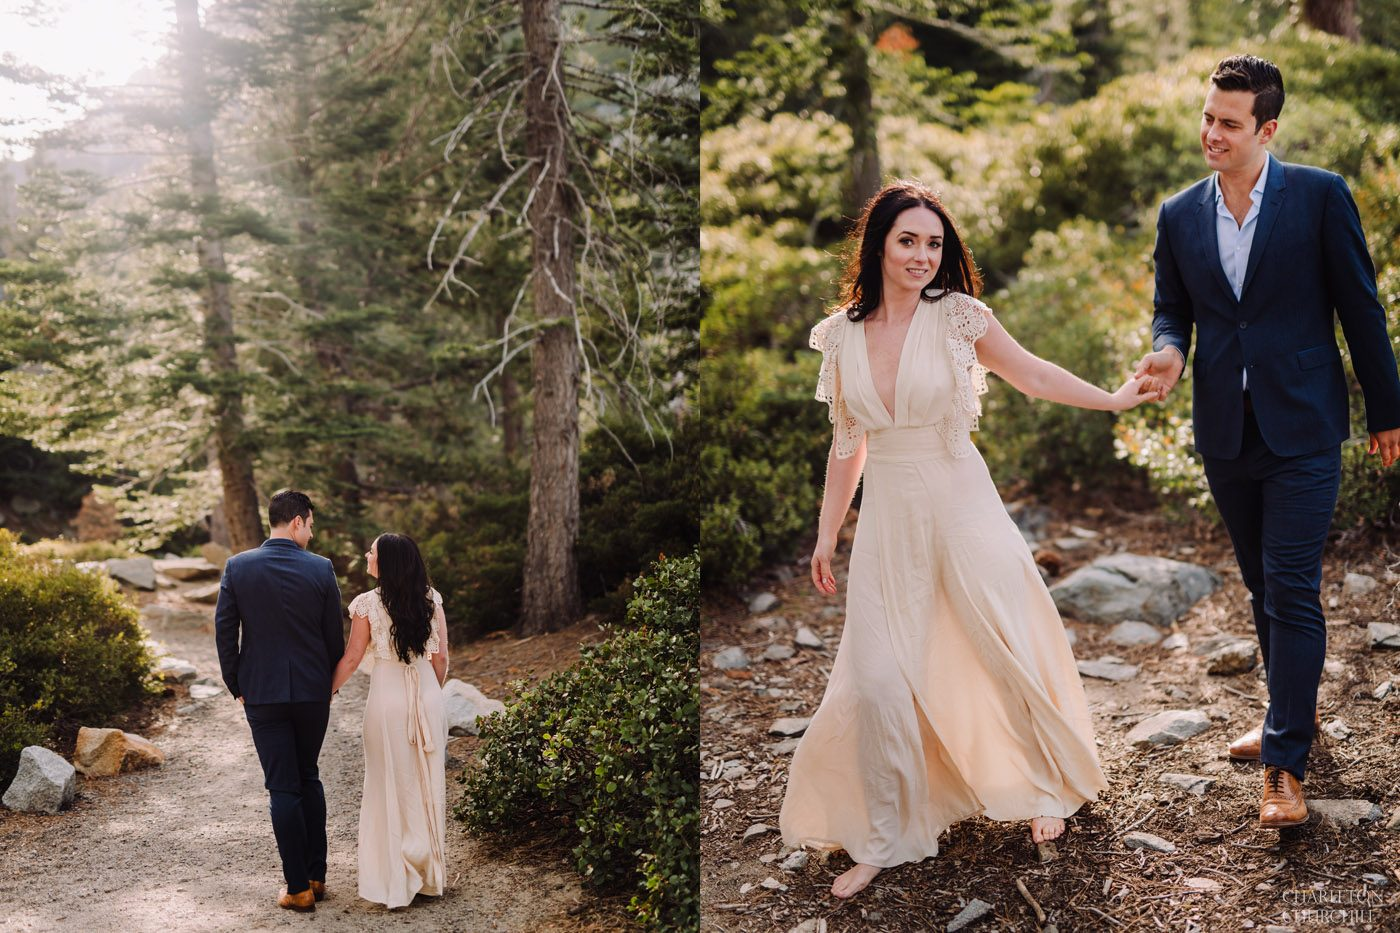 whispy natural ligth of bride and groom in the tahoe forest